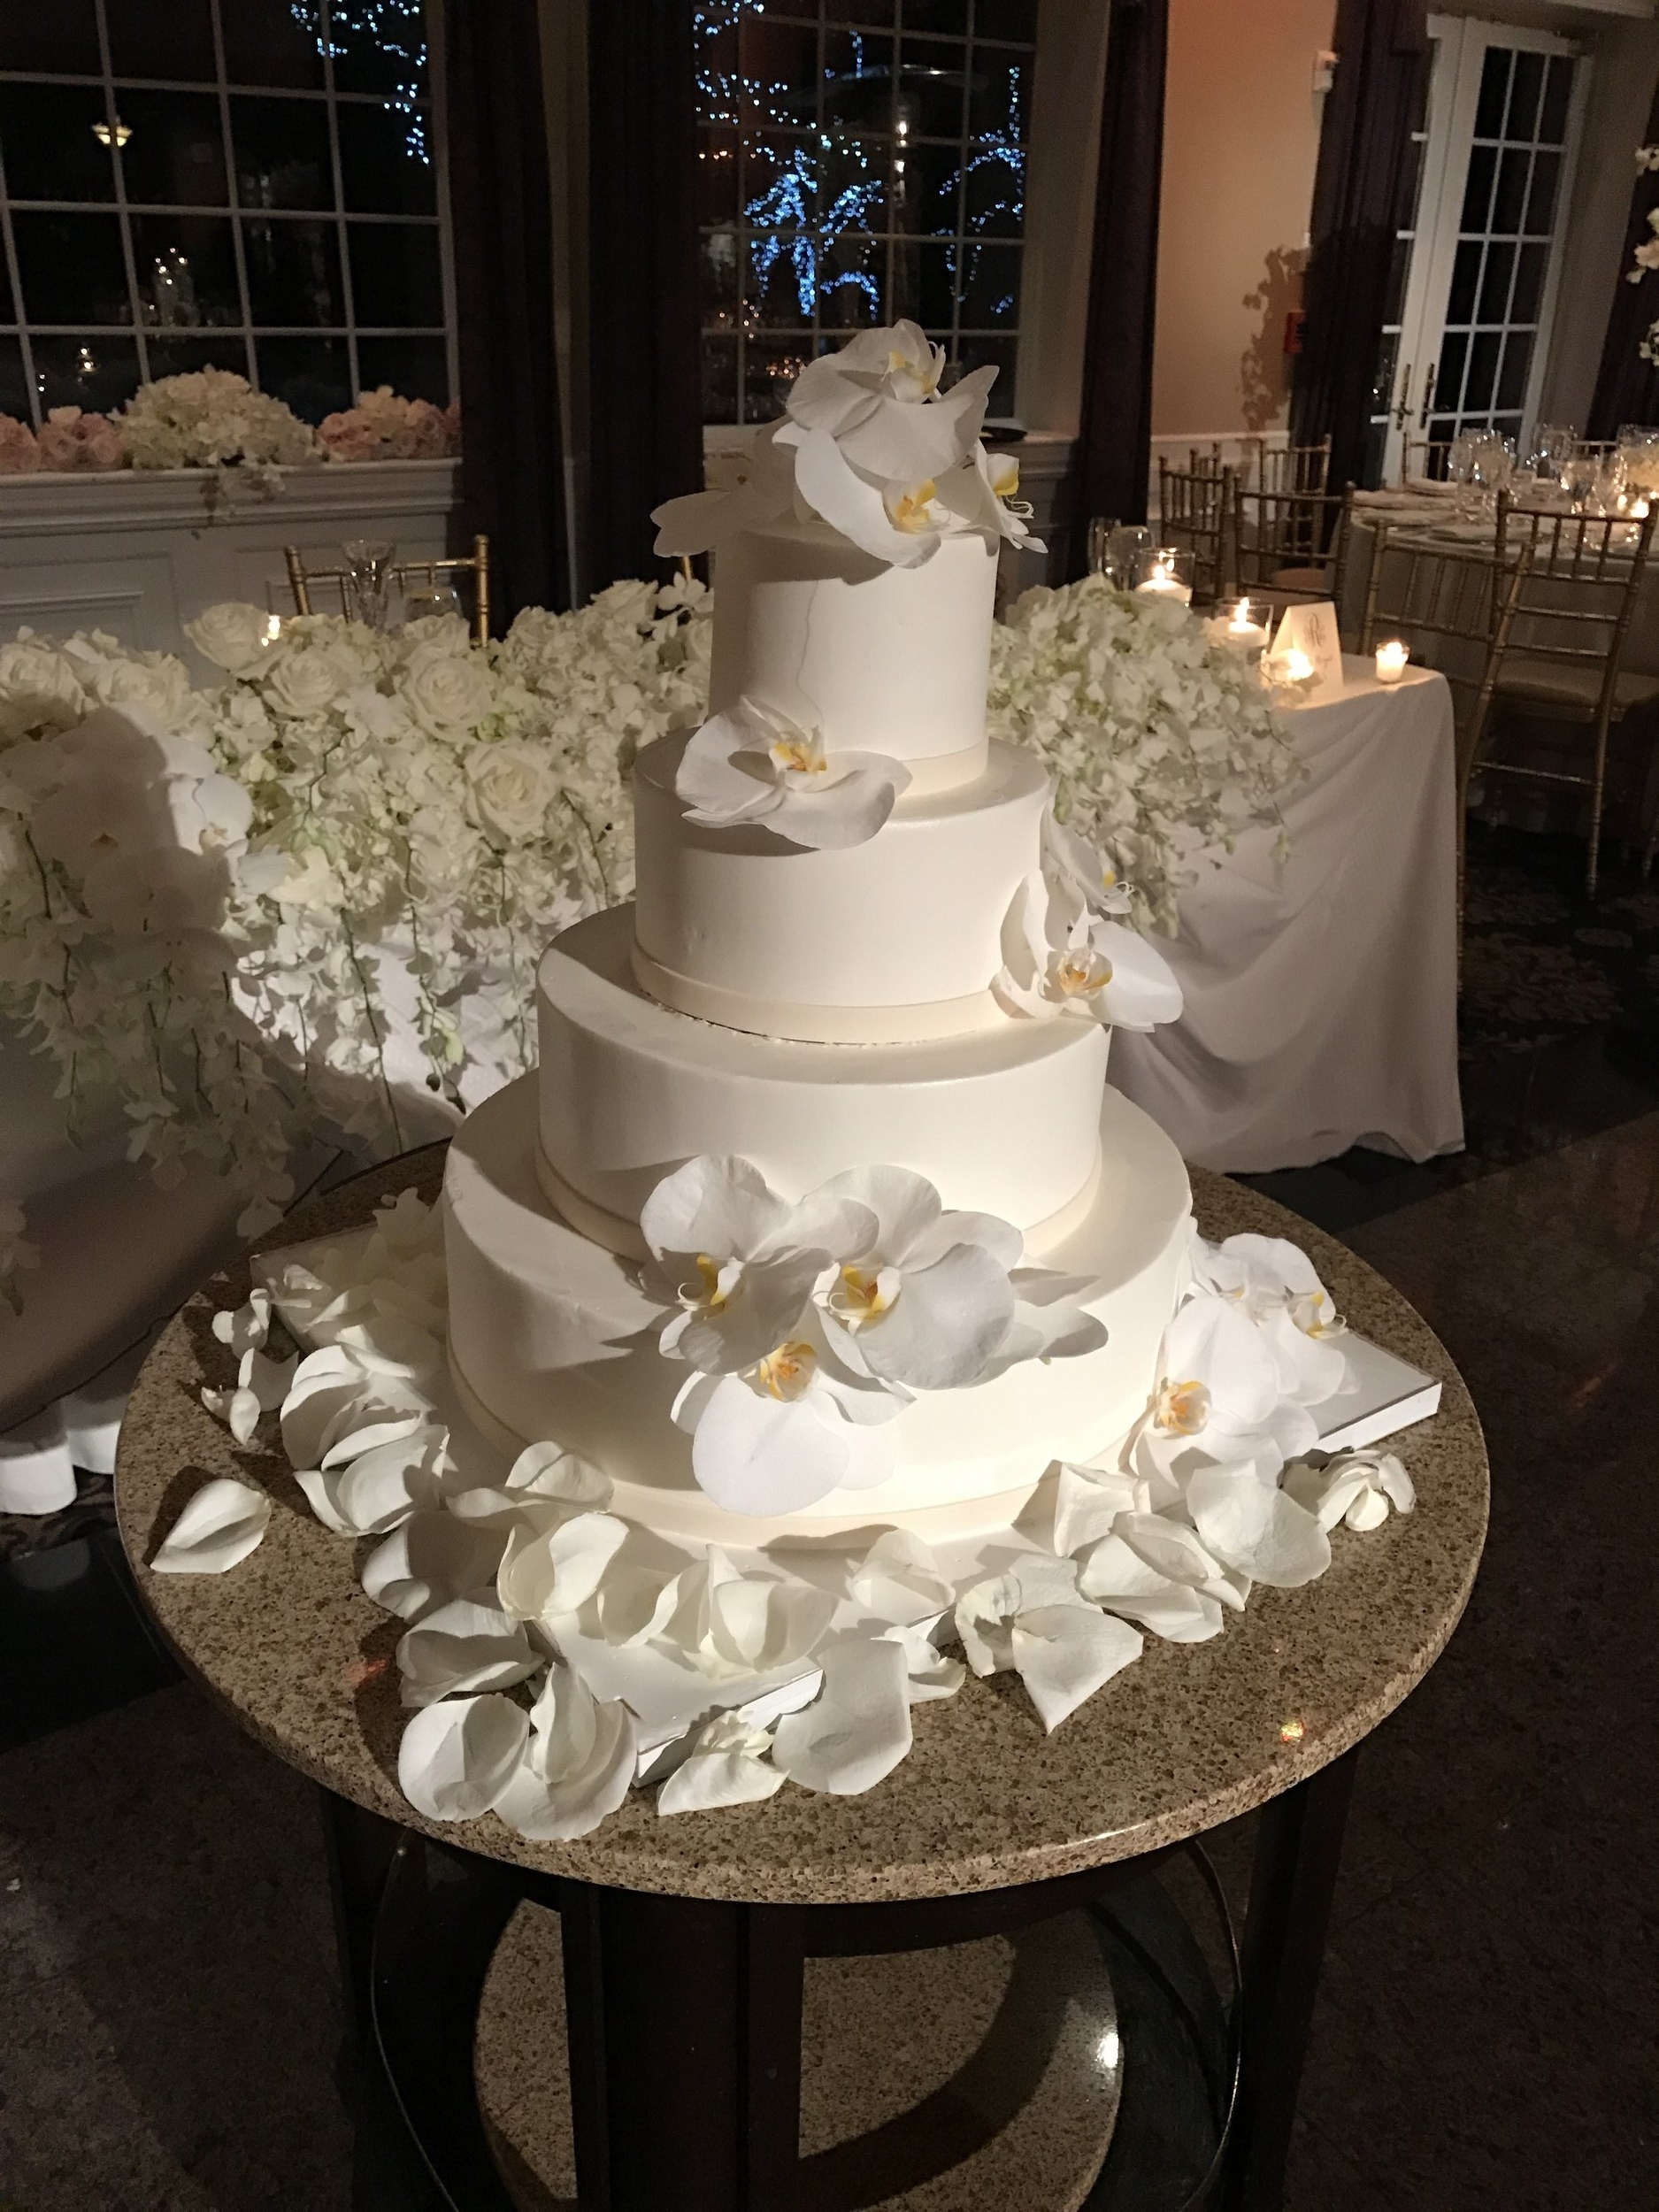 Robins Wedding Cake.jpg